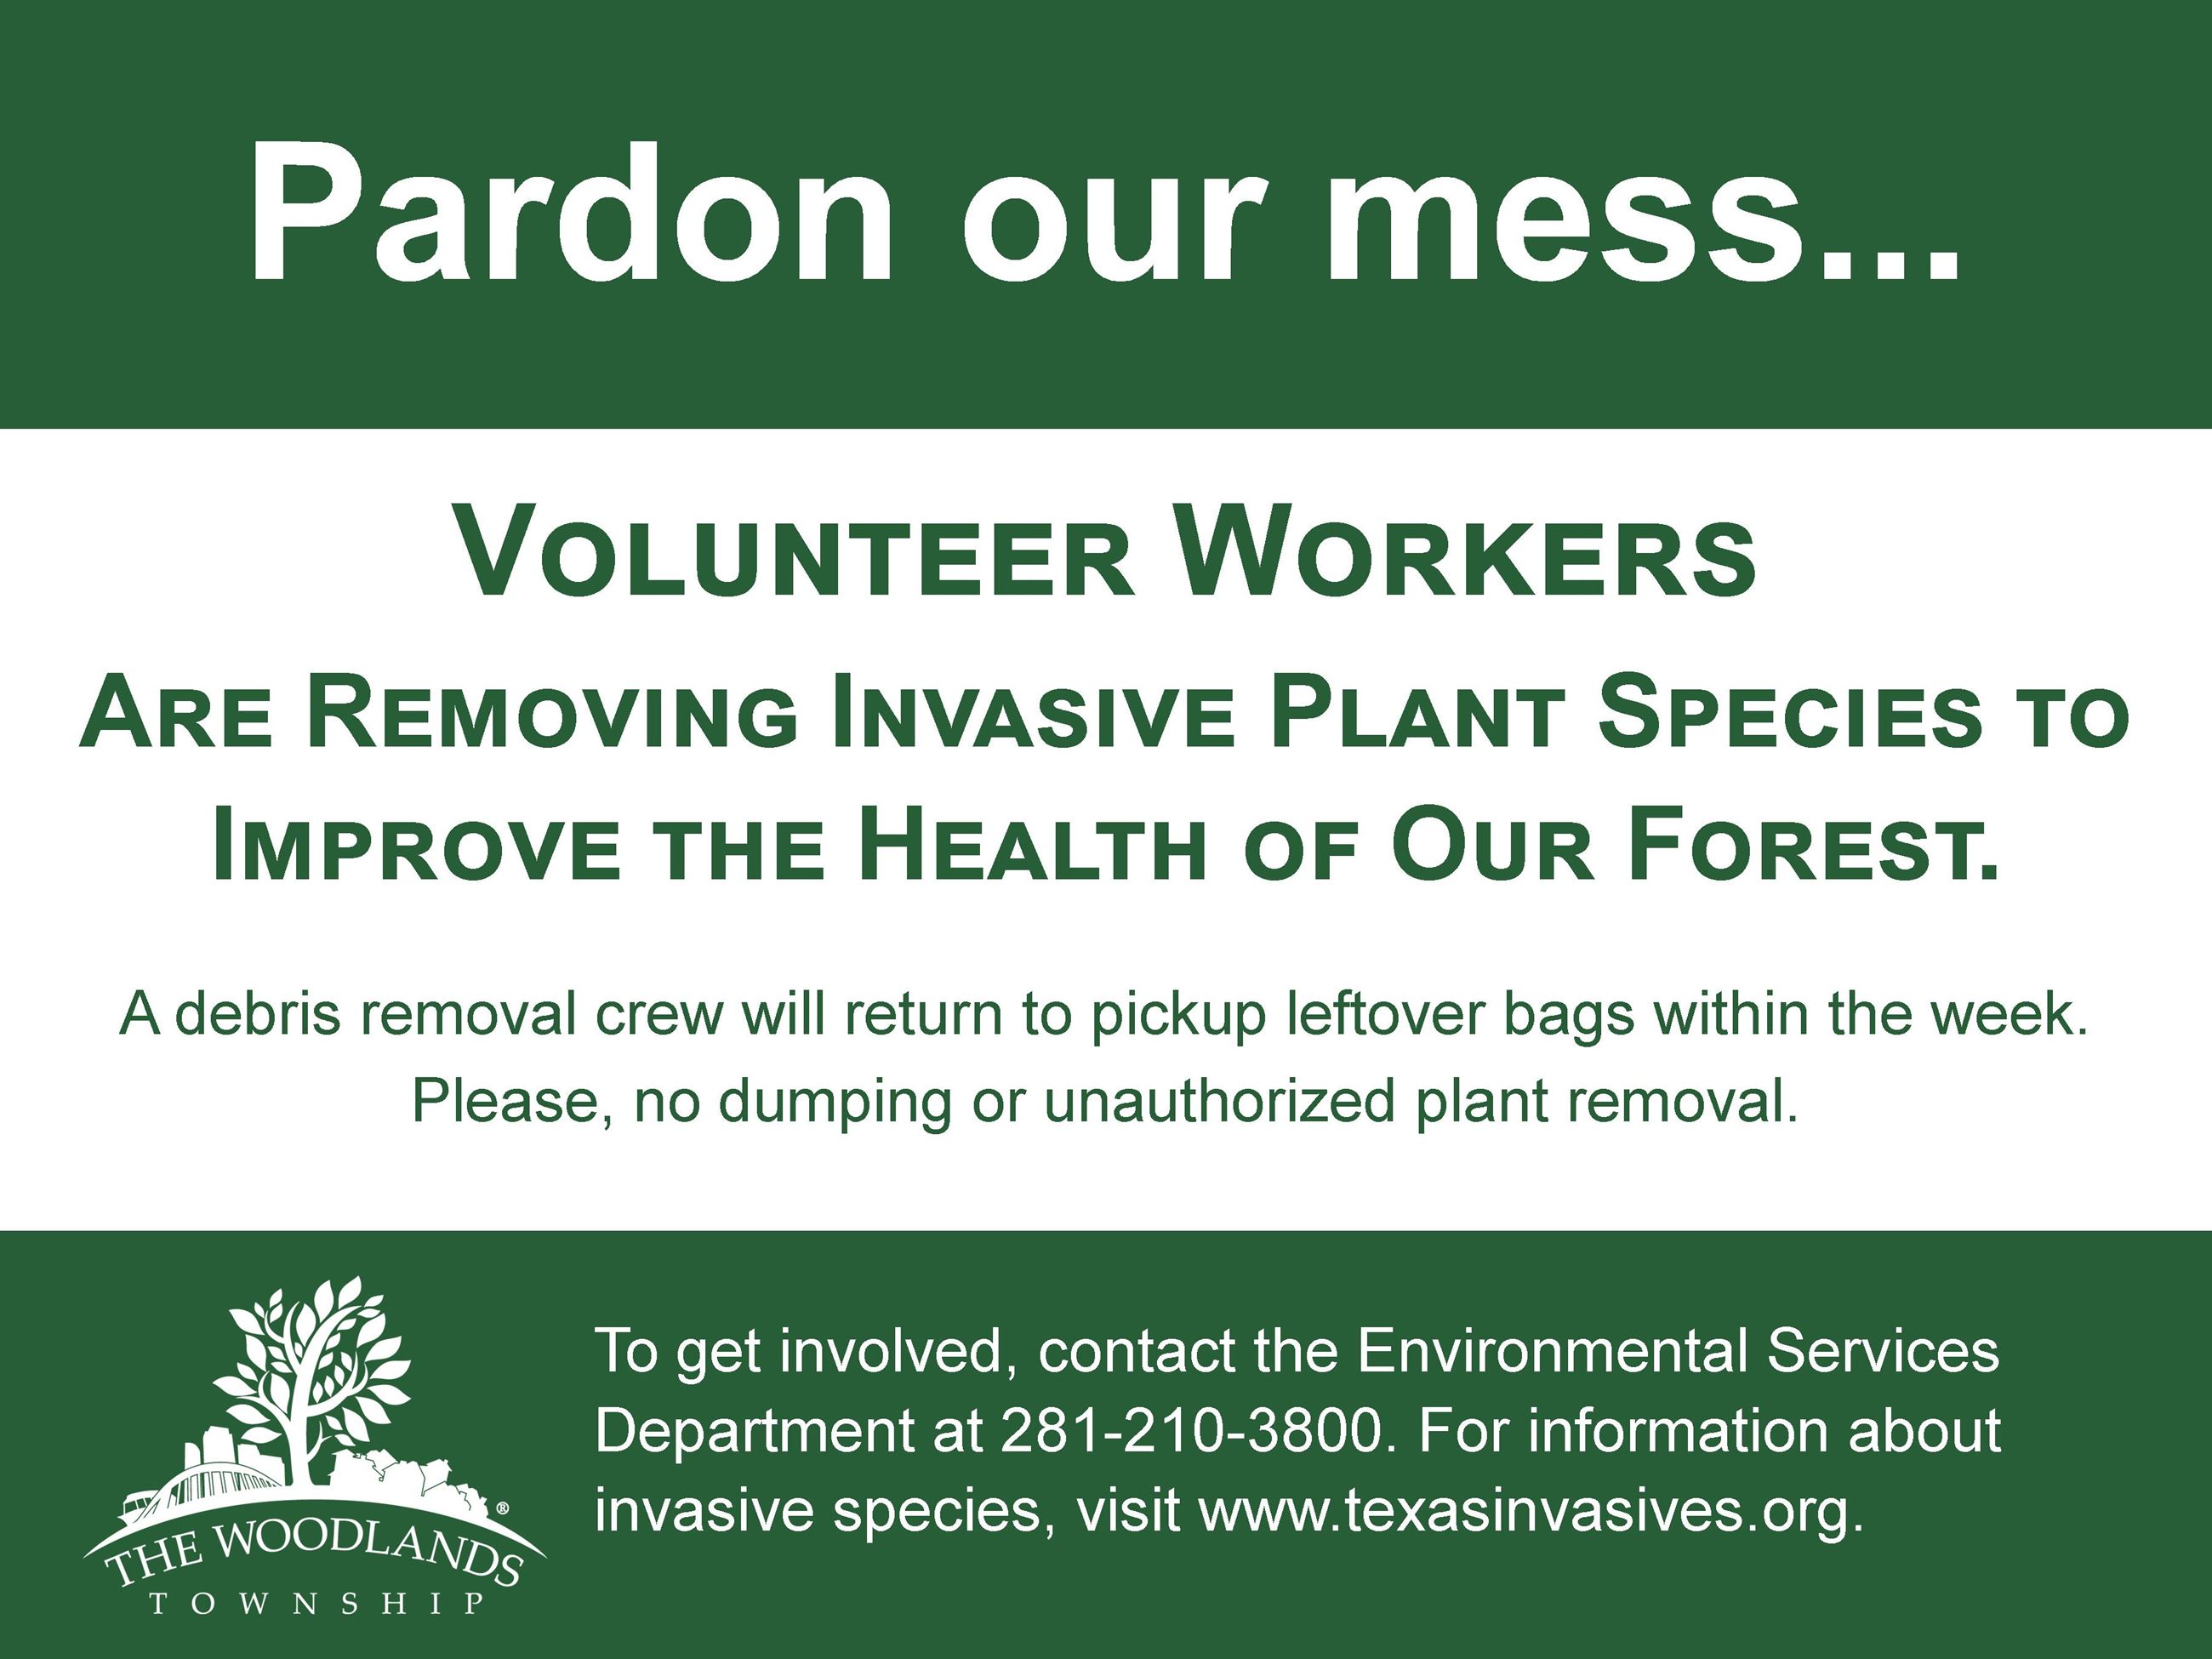 InvasivesSign - PARDON OUR MESS (2)